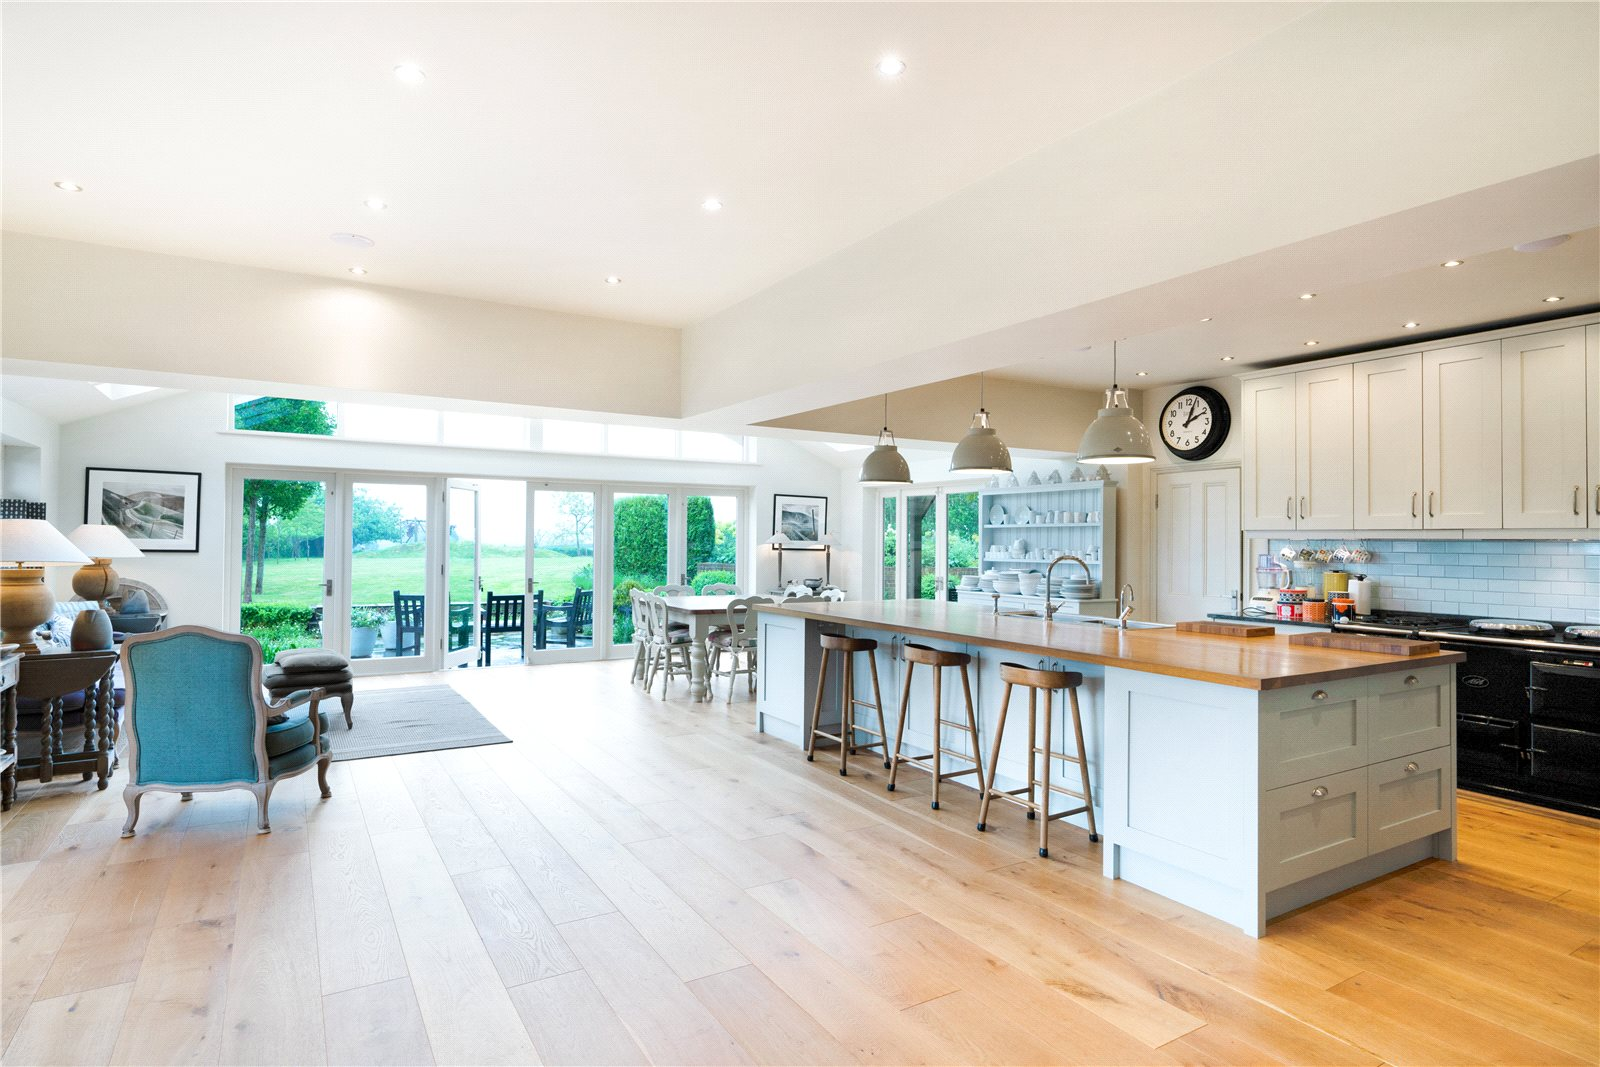 Strutt & Parker: Lewes - Luxury Real Estate Agents in Lewes ...